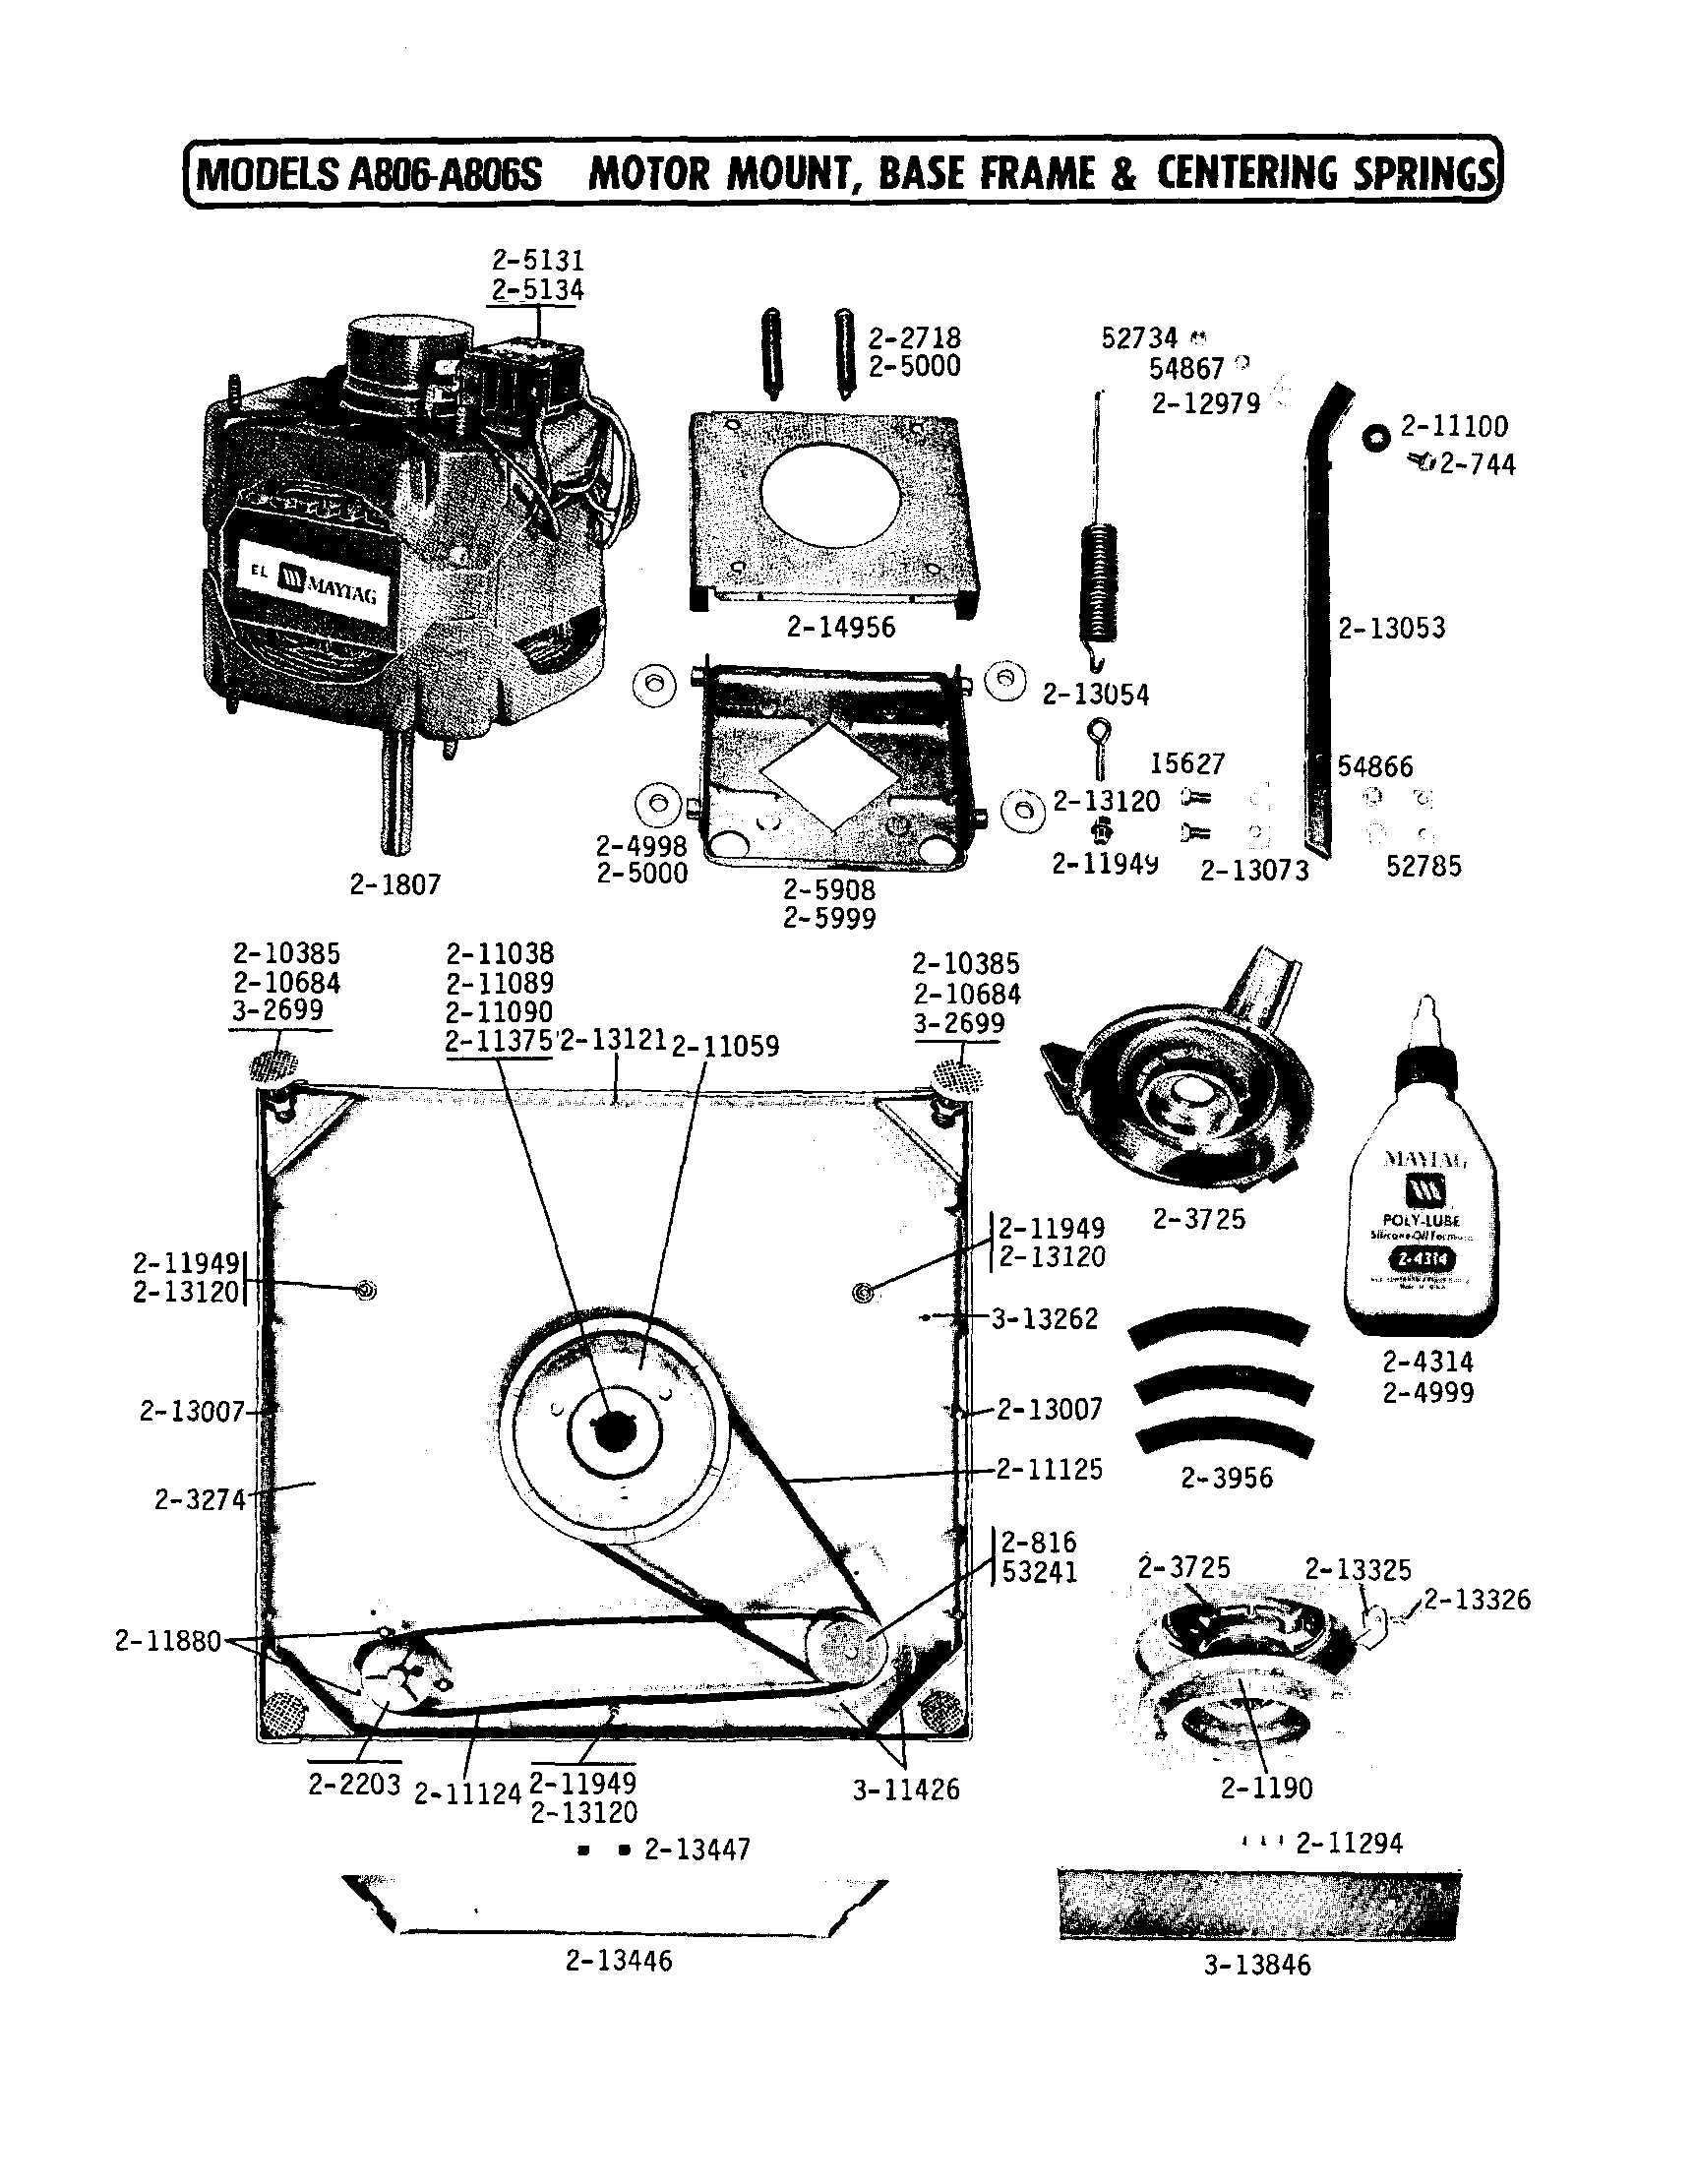 Maytag a806 timer stove clocks and appliance timers a806 washer motor mount parts diagram swarovskicordoba Gallery